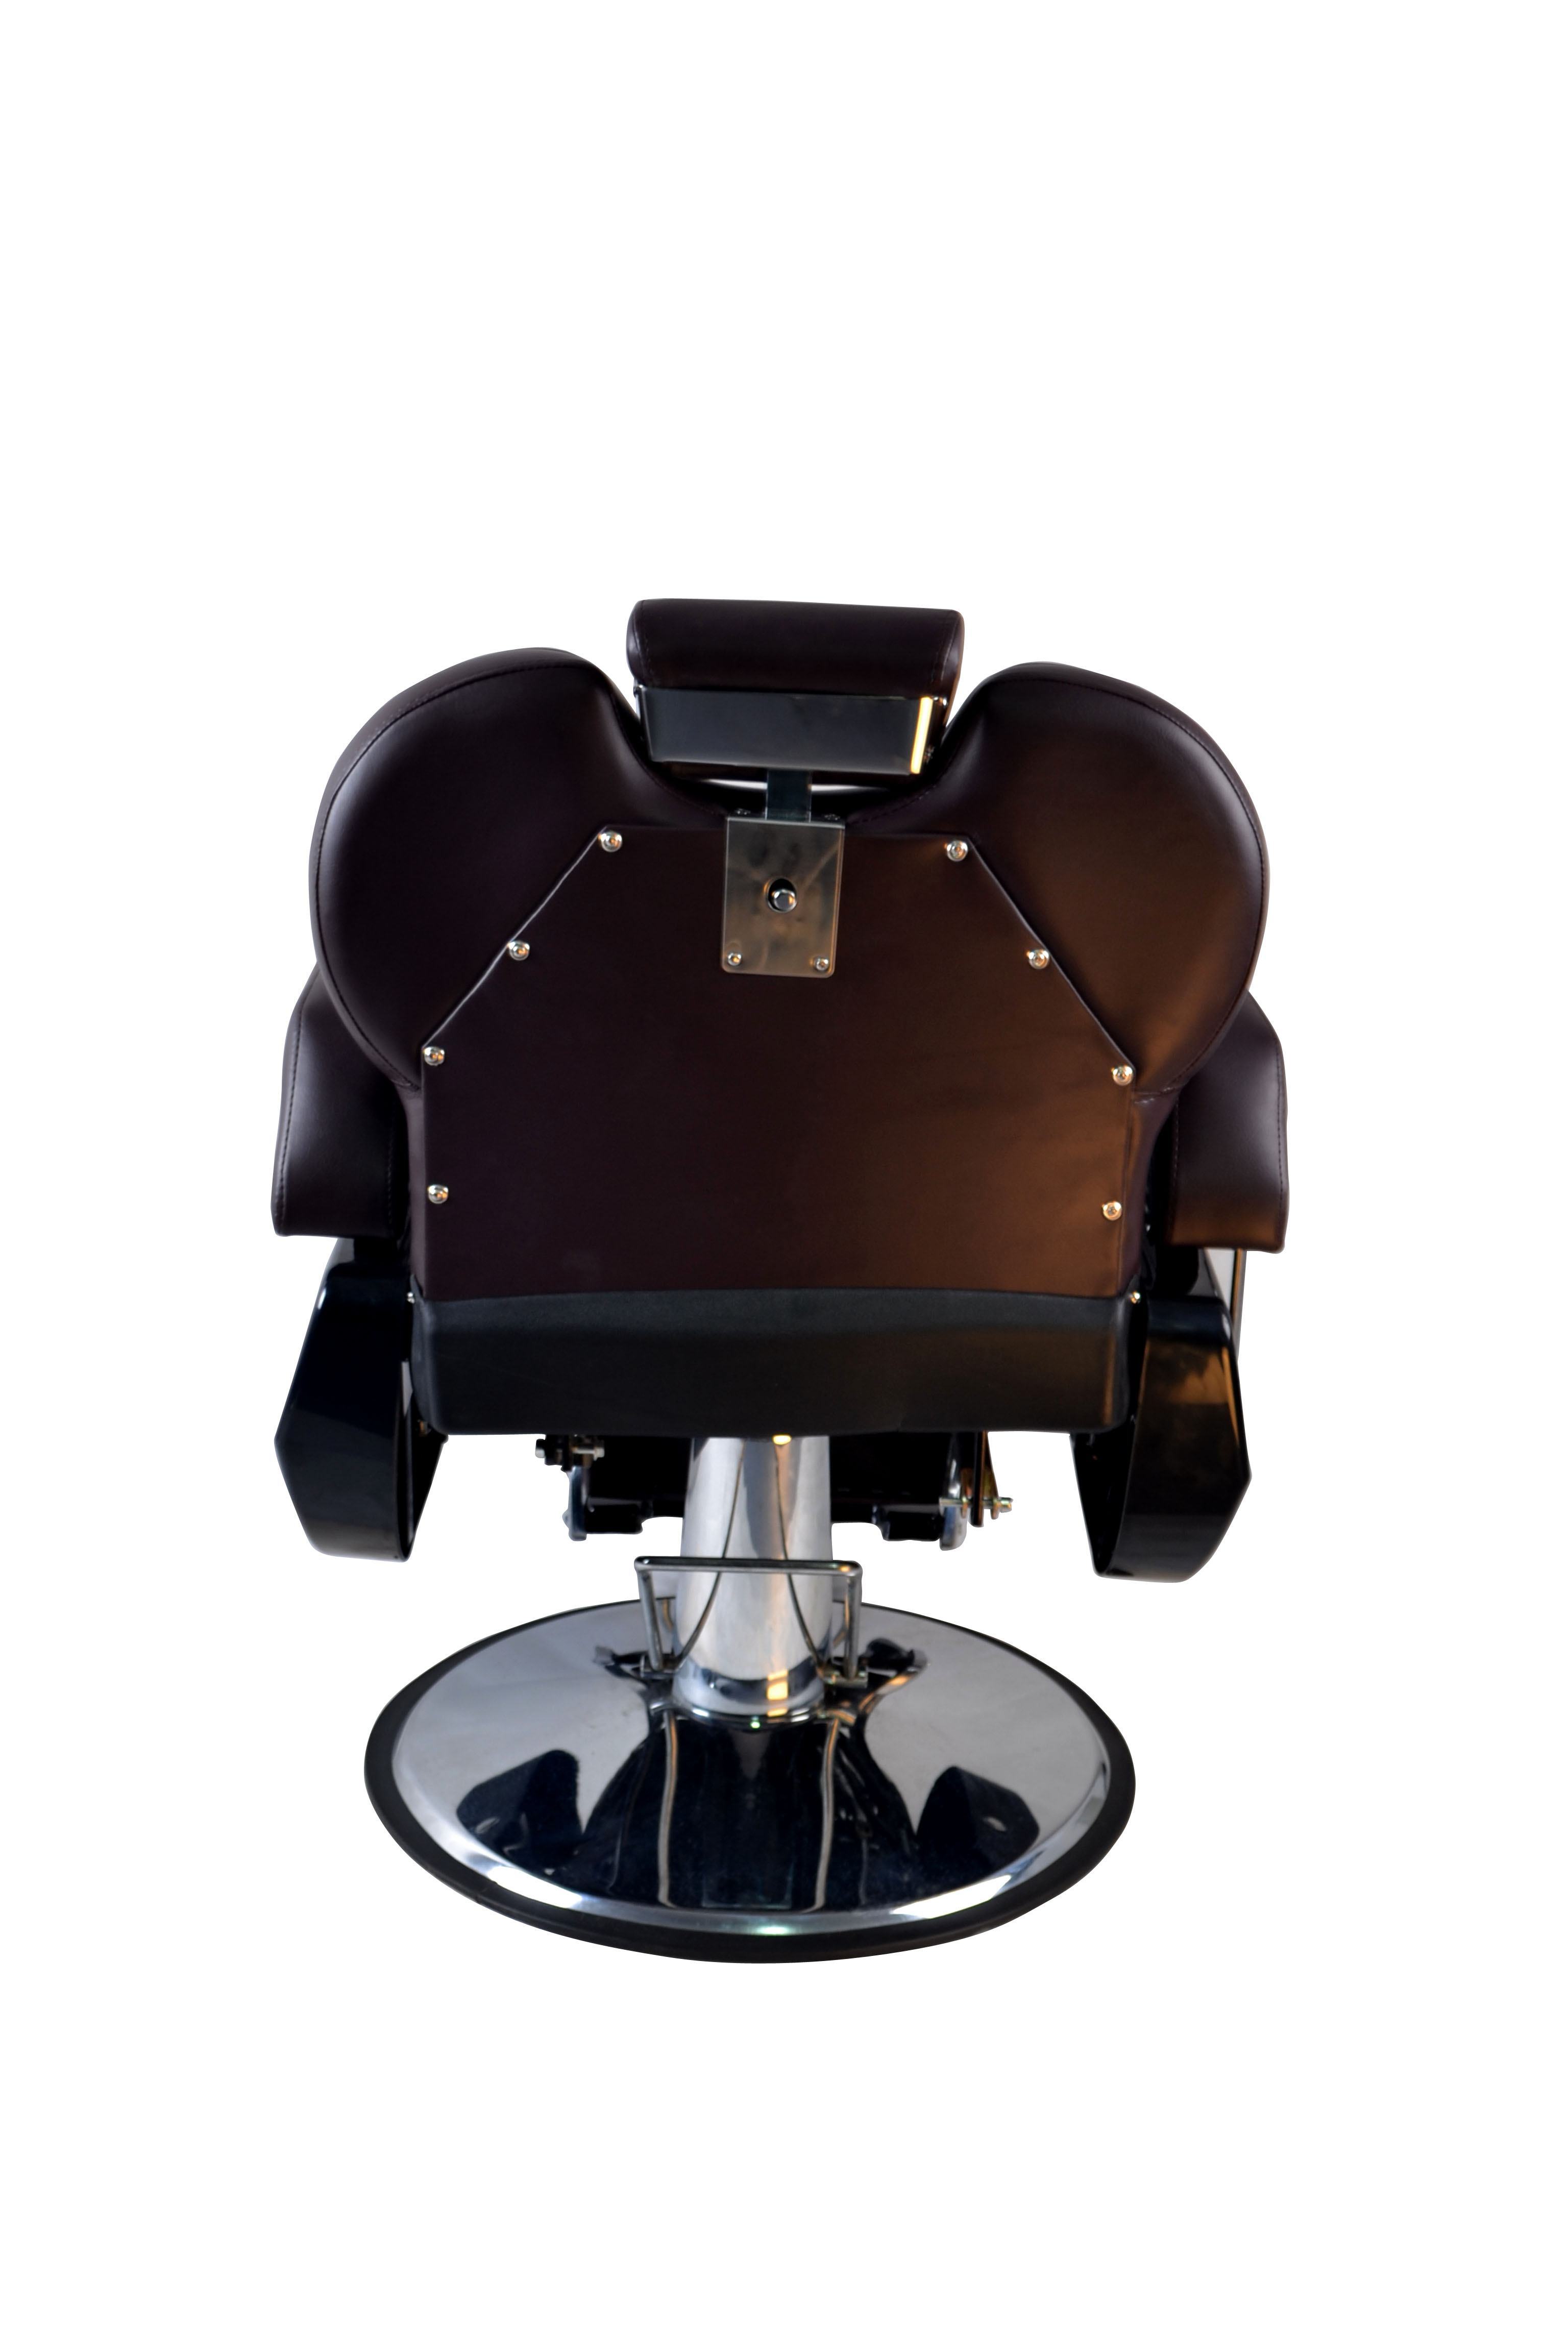 BarberPub All Purpose Hydraulic Recline Barber Chair Salon Beauty Spa 8702 Brown 15